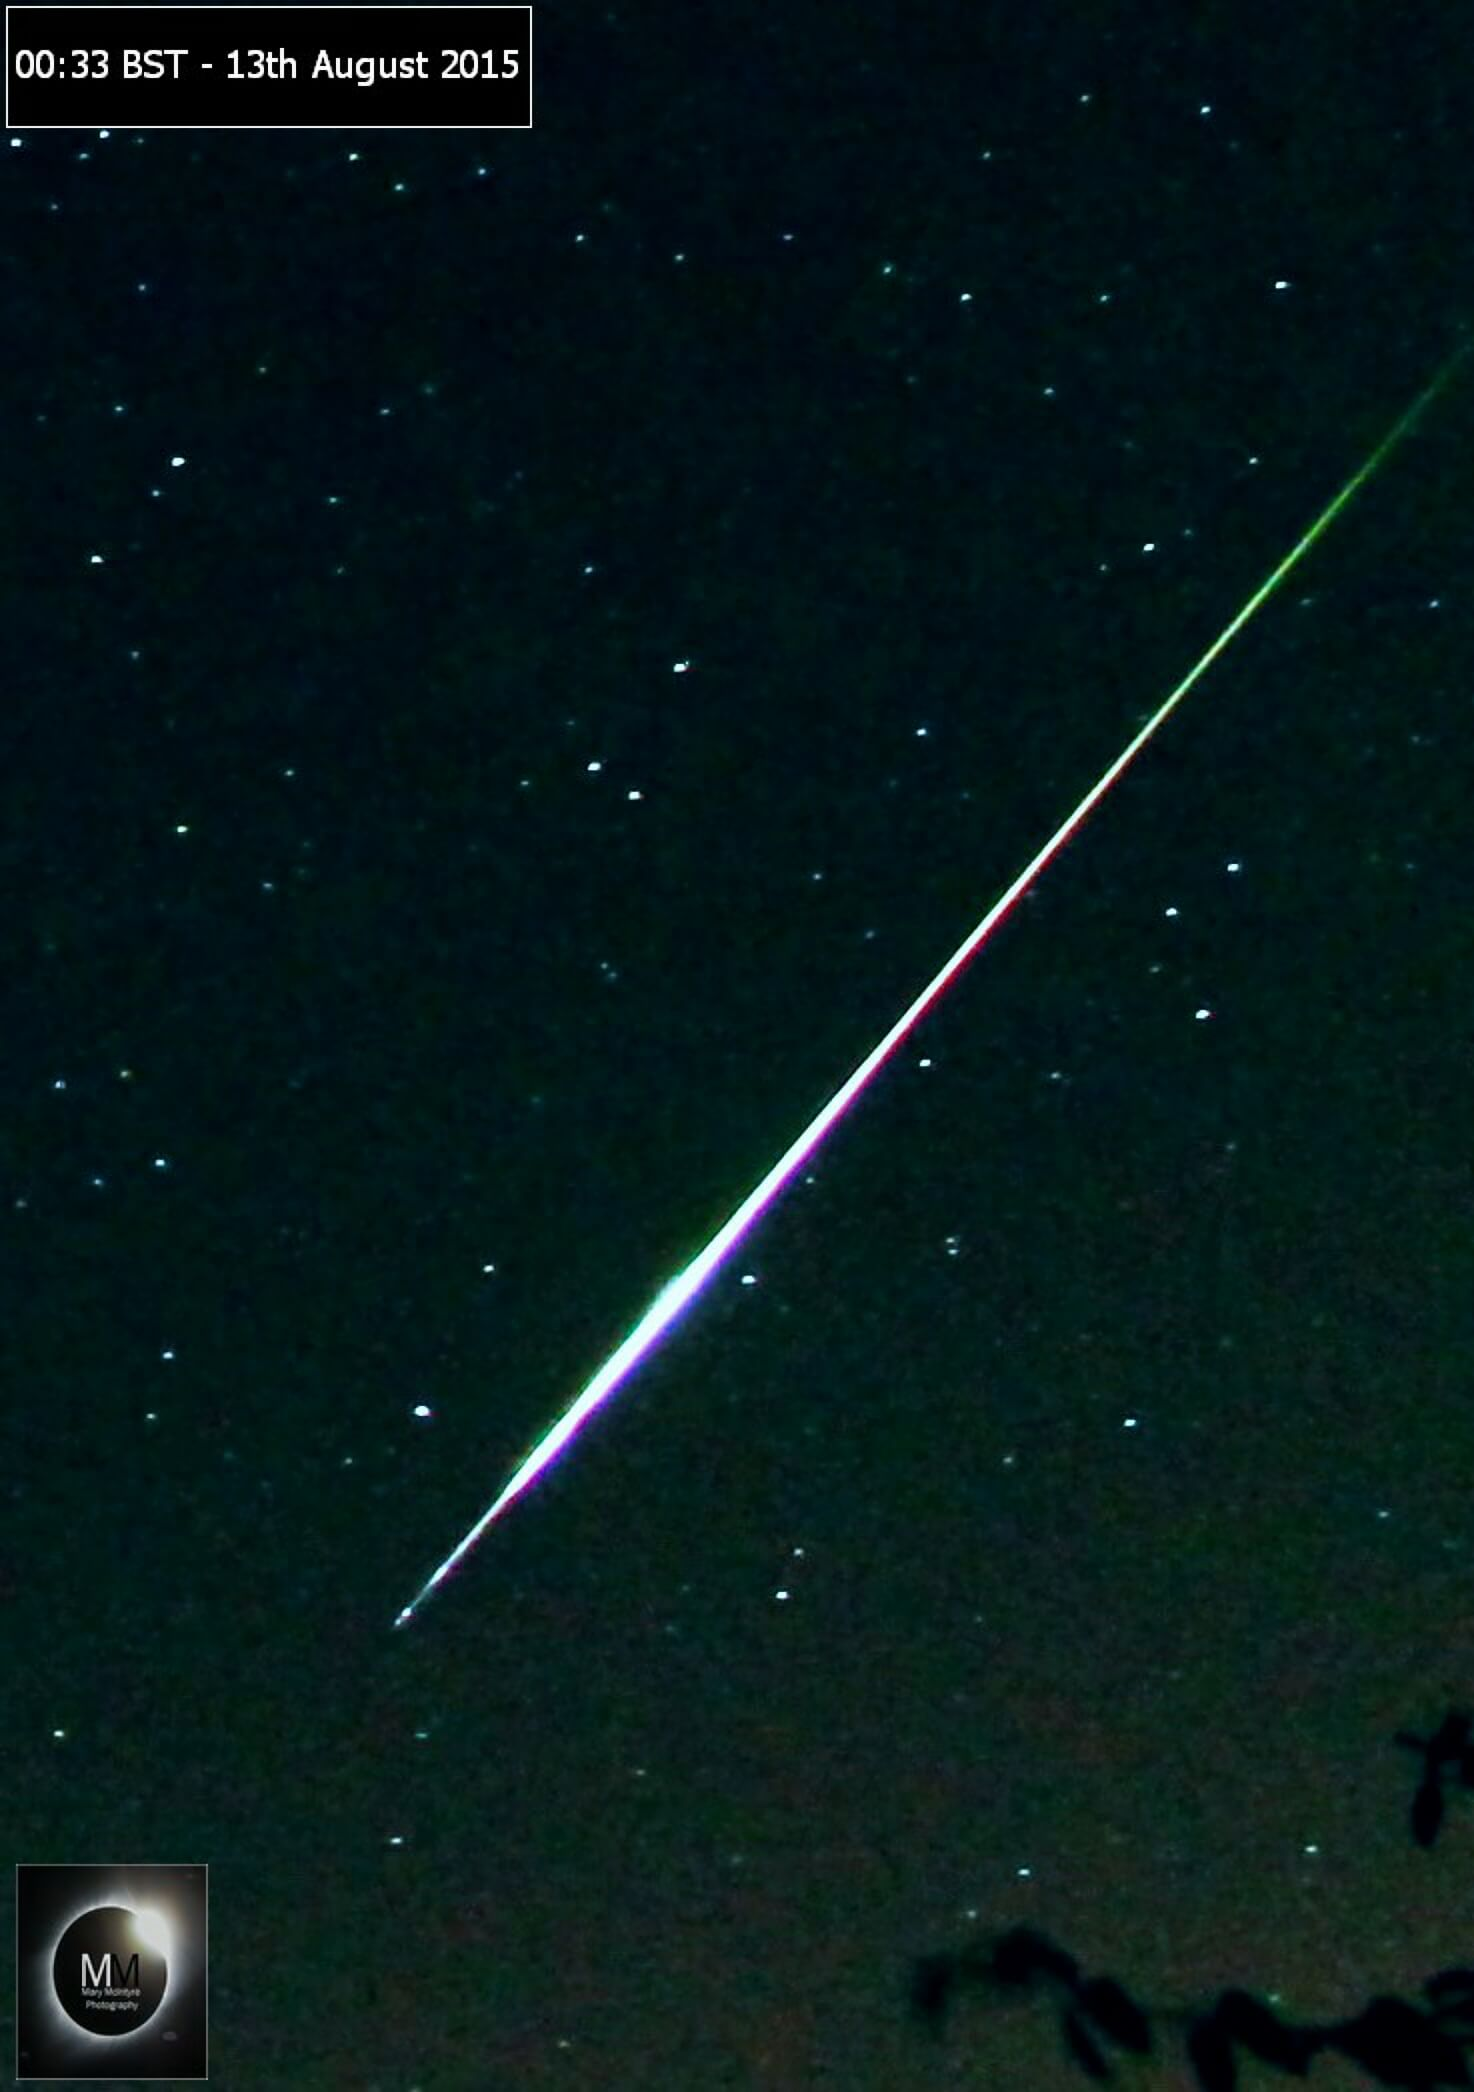 Perseid Fireball from Oxfordshire, 00:33BST 13th August 2015 by Mary McIntyre